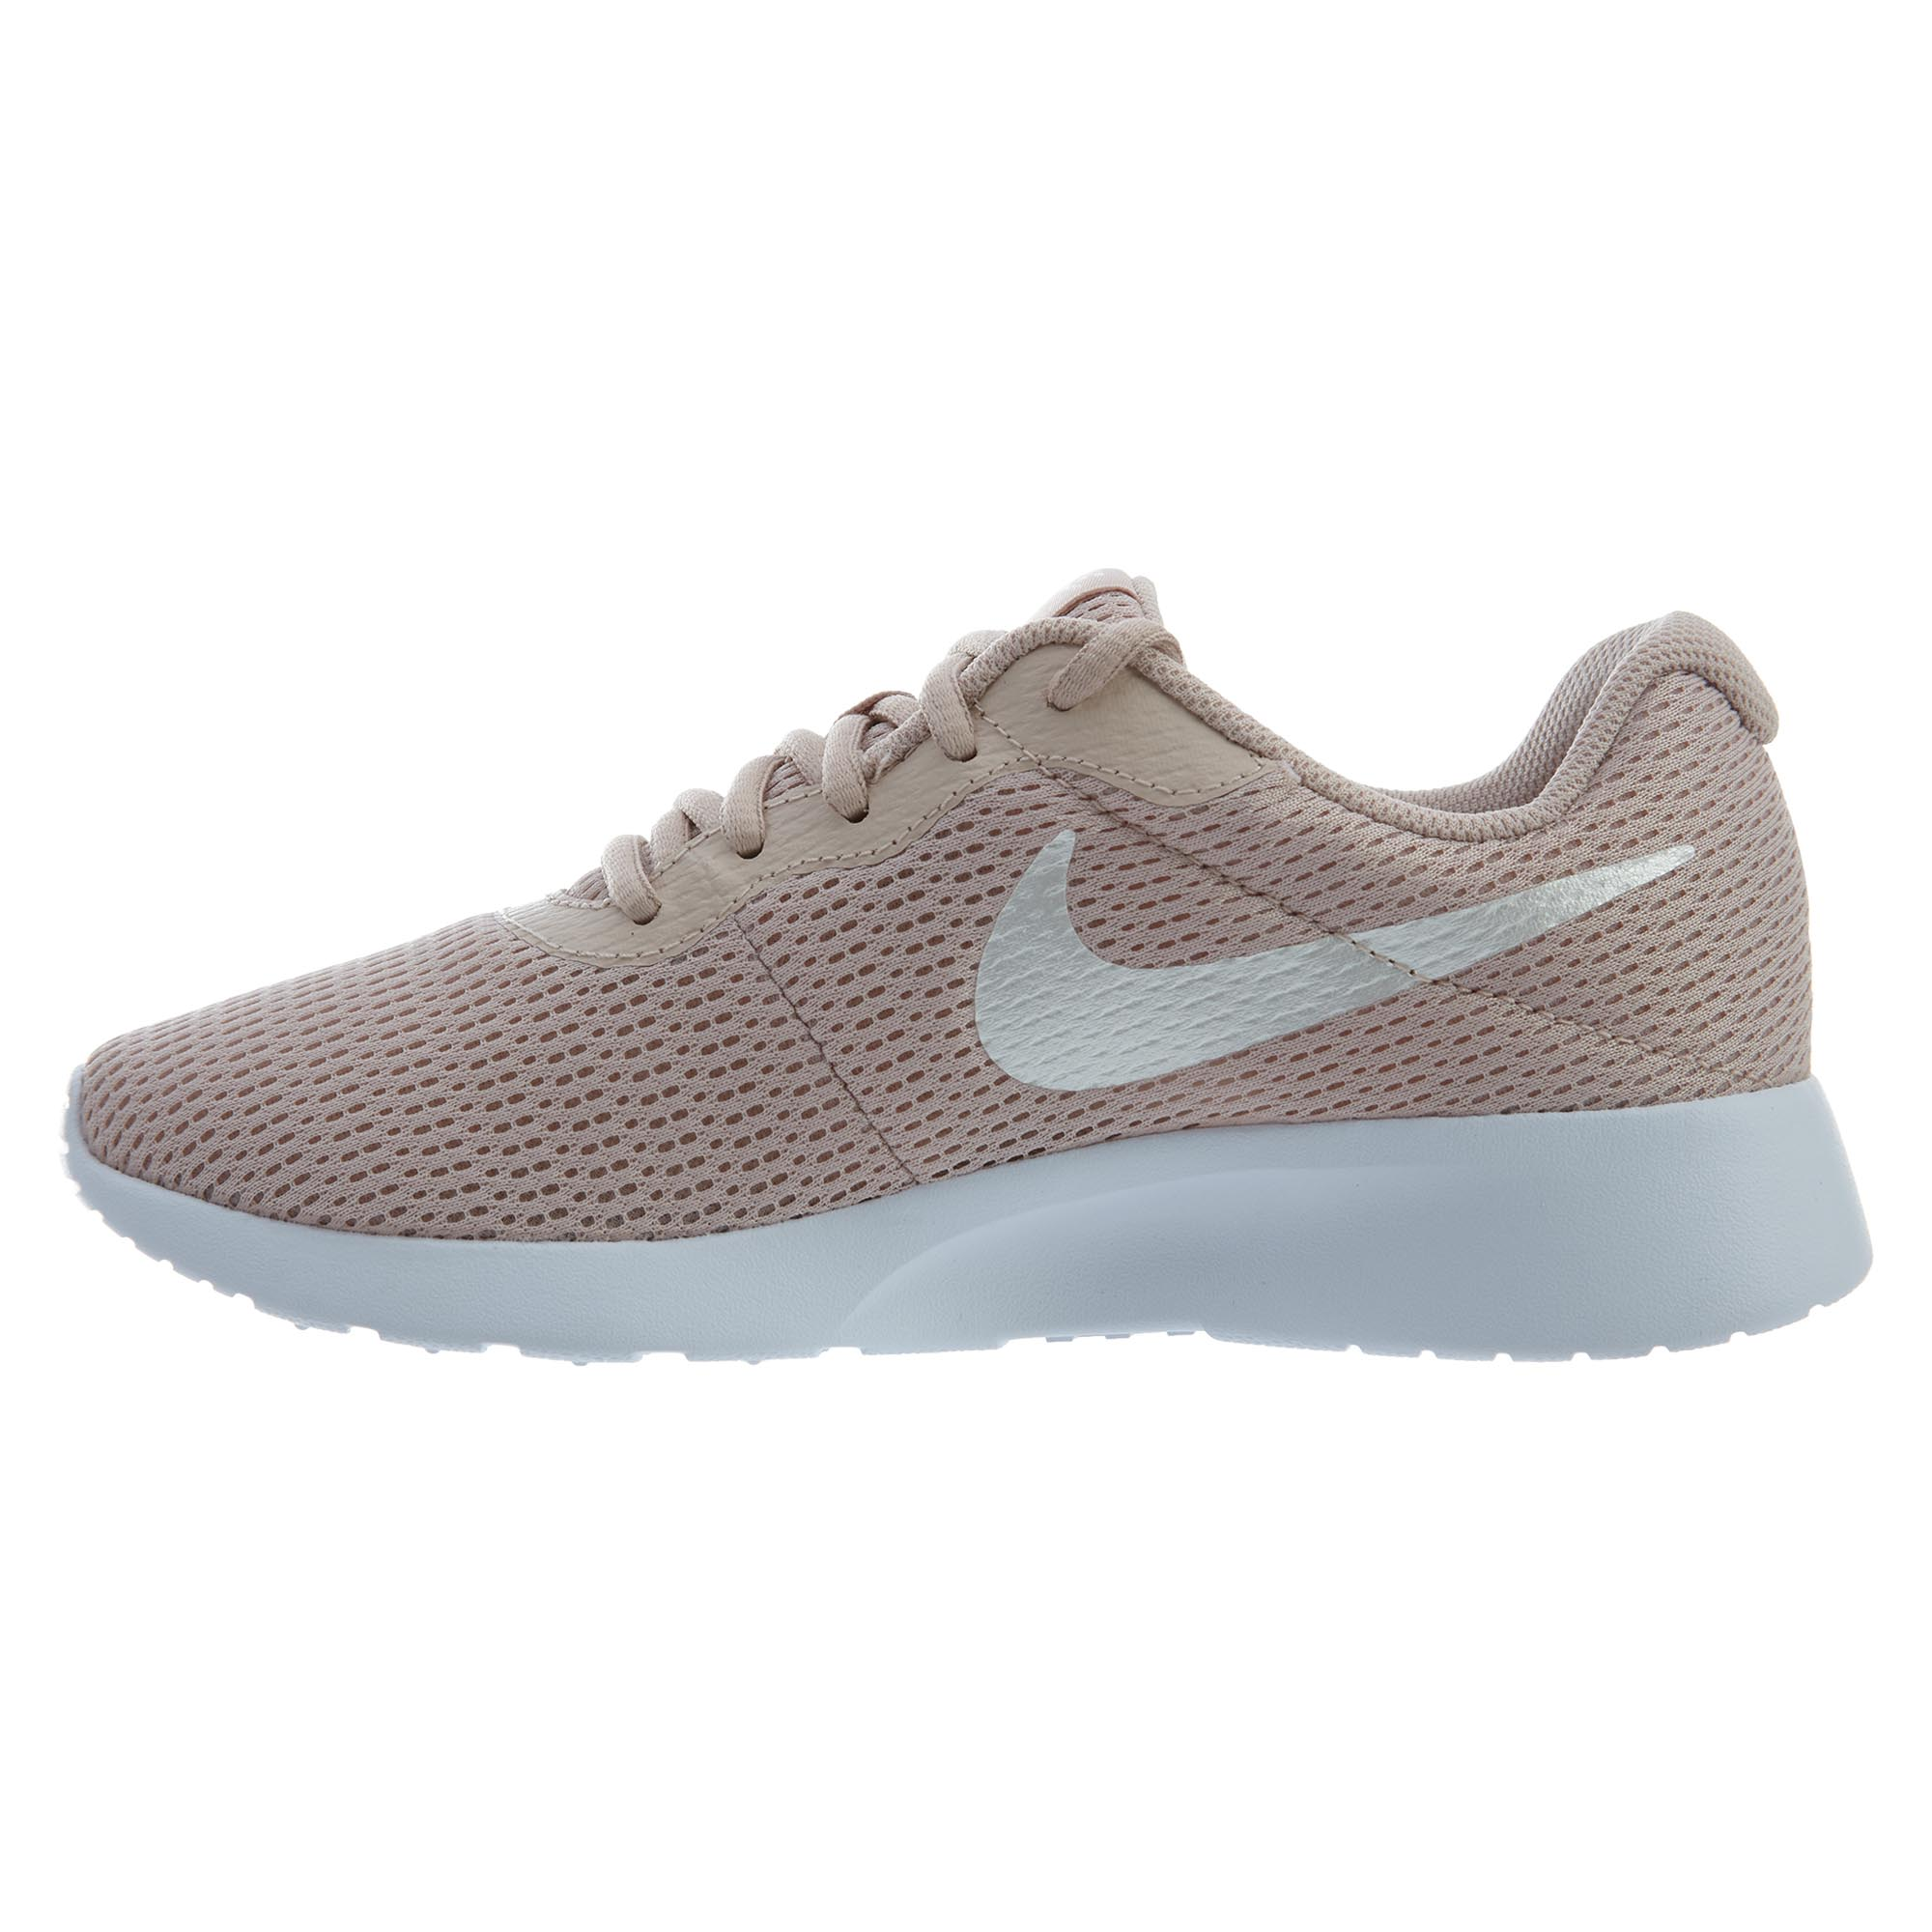 newest collection dd9a3 97929 Details about Nike Womens Tanjun Running Shoes 812655-202